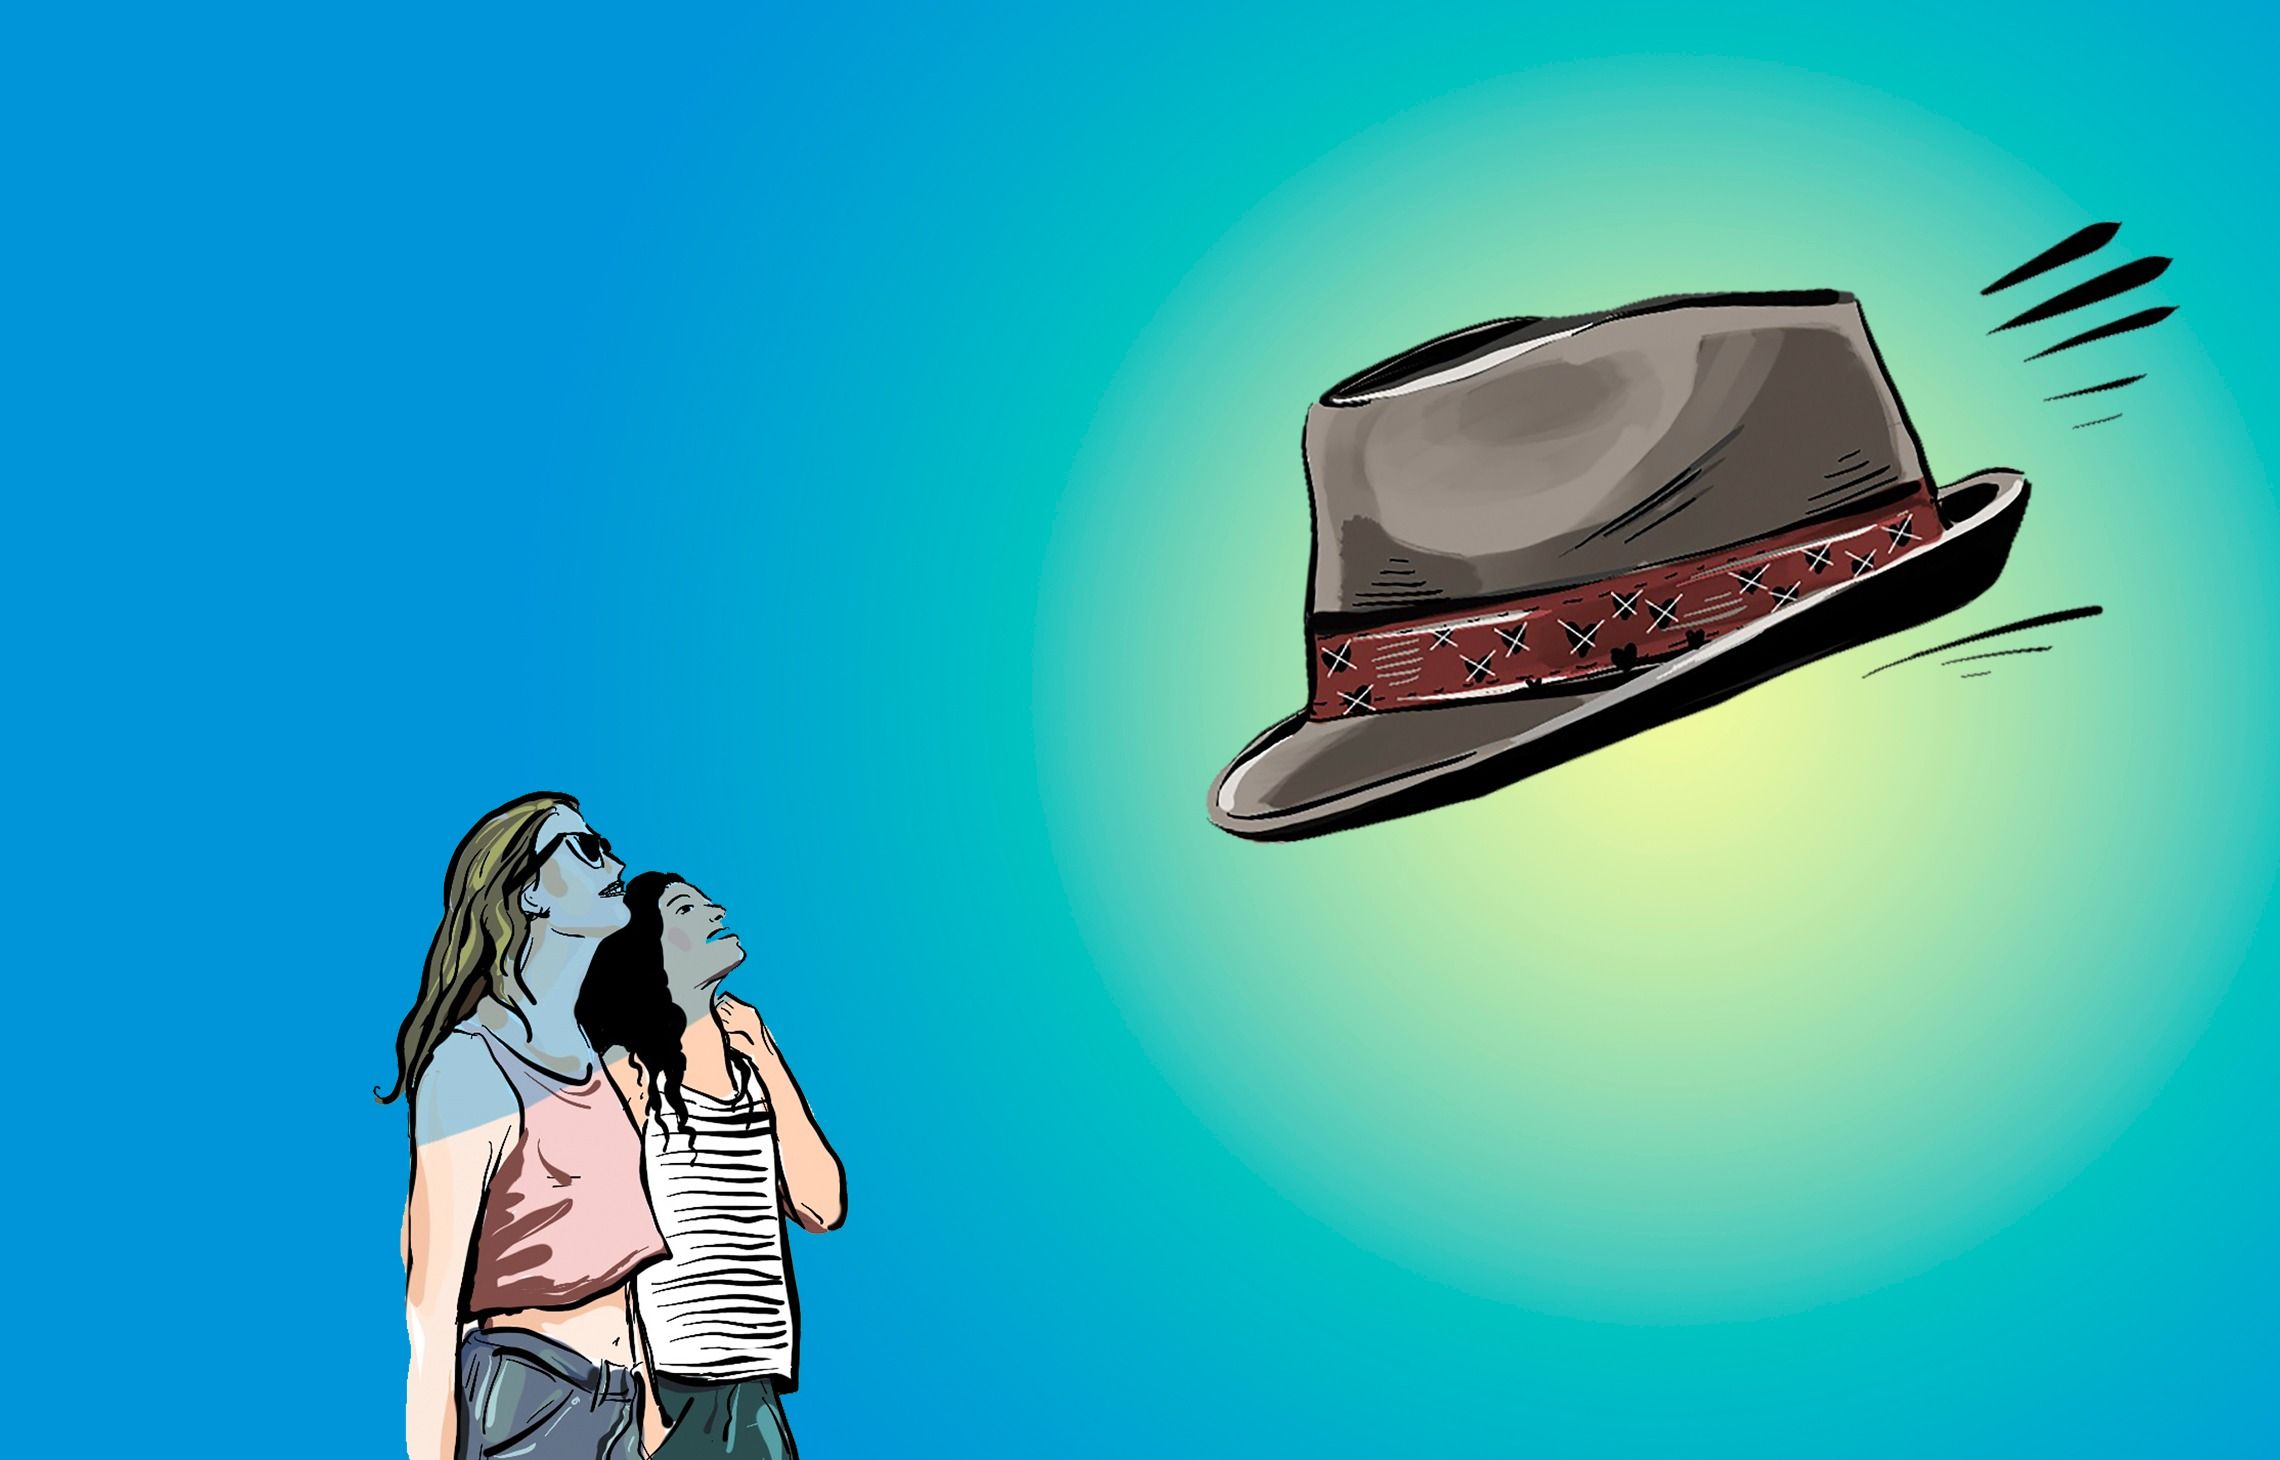 Why You Should Never Date A Man In A Fedora The Forward